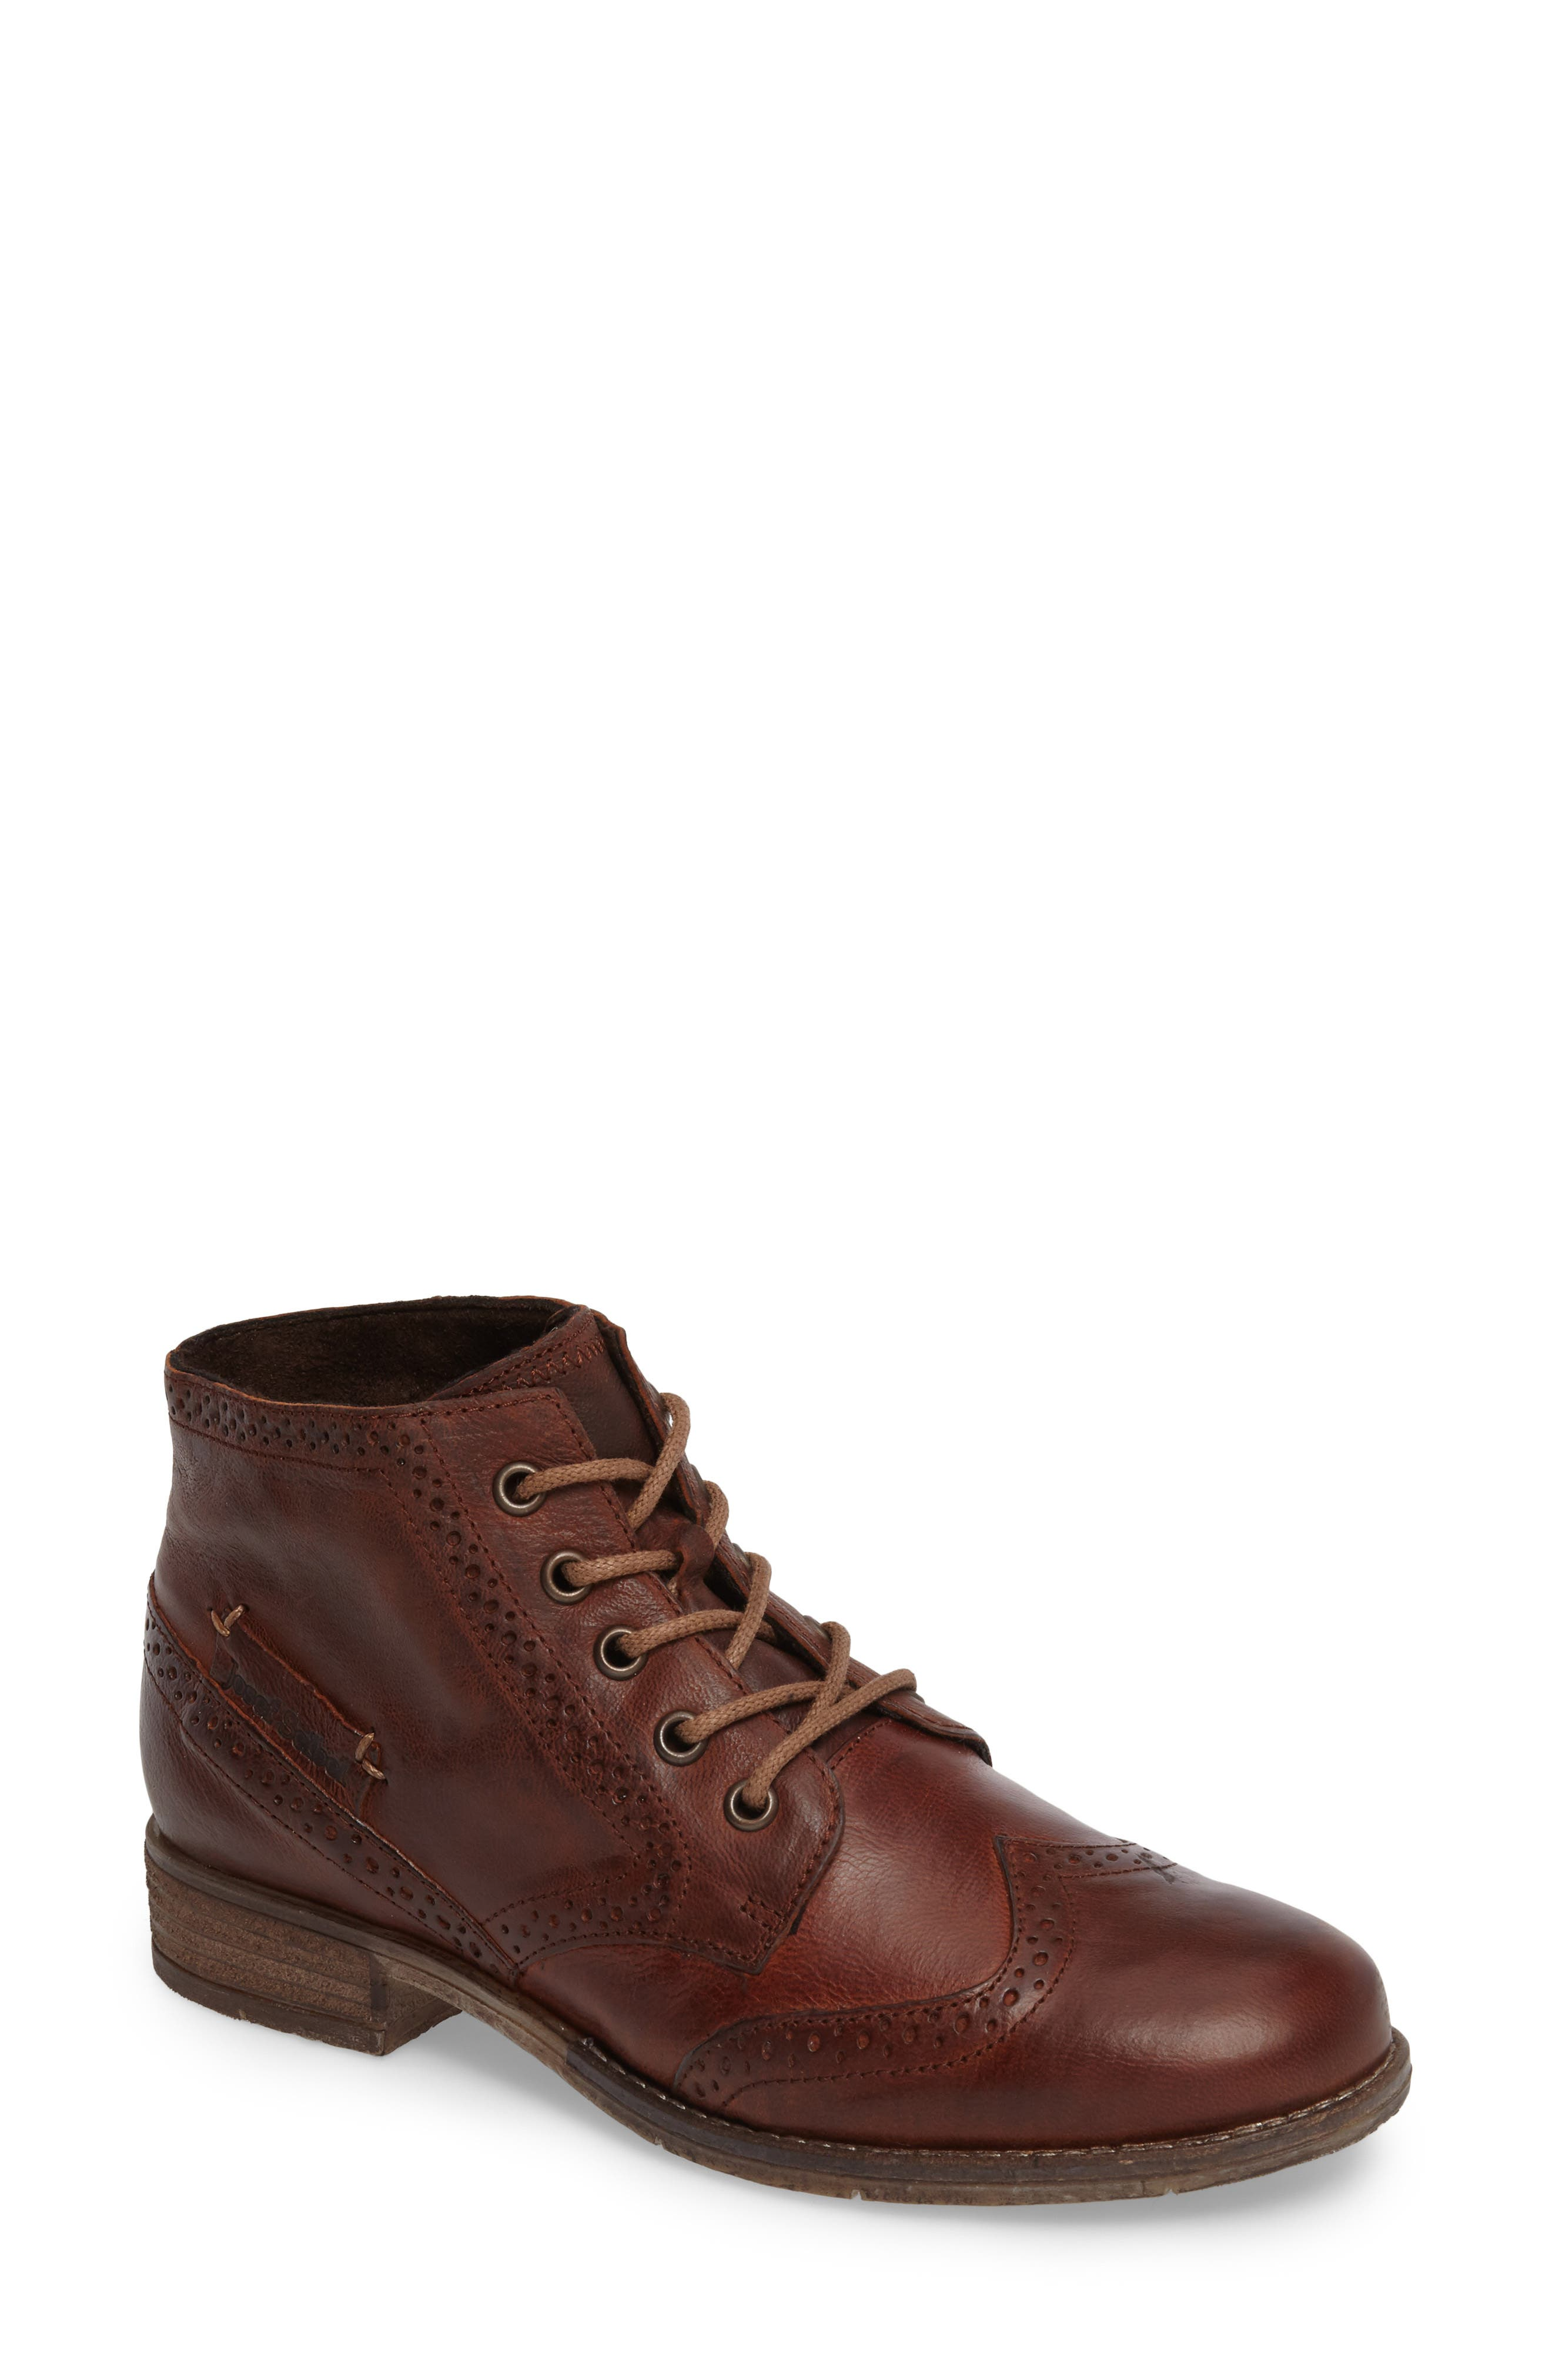 'Sienna 15' Wingtip Bootie,                         Main,                         color, Camel Leather